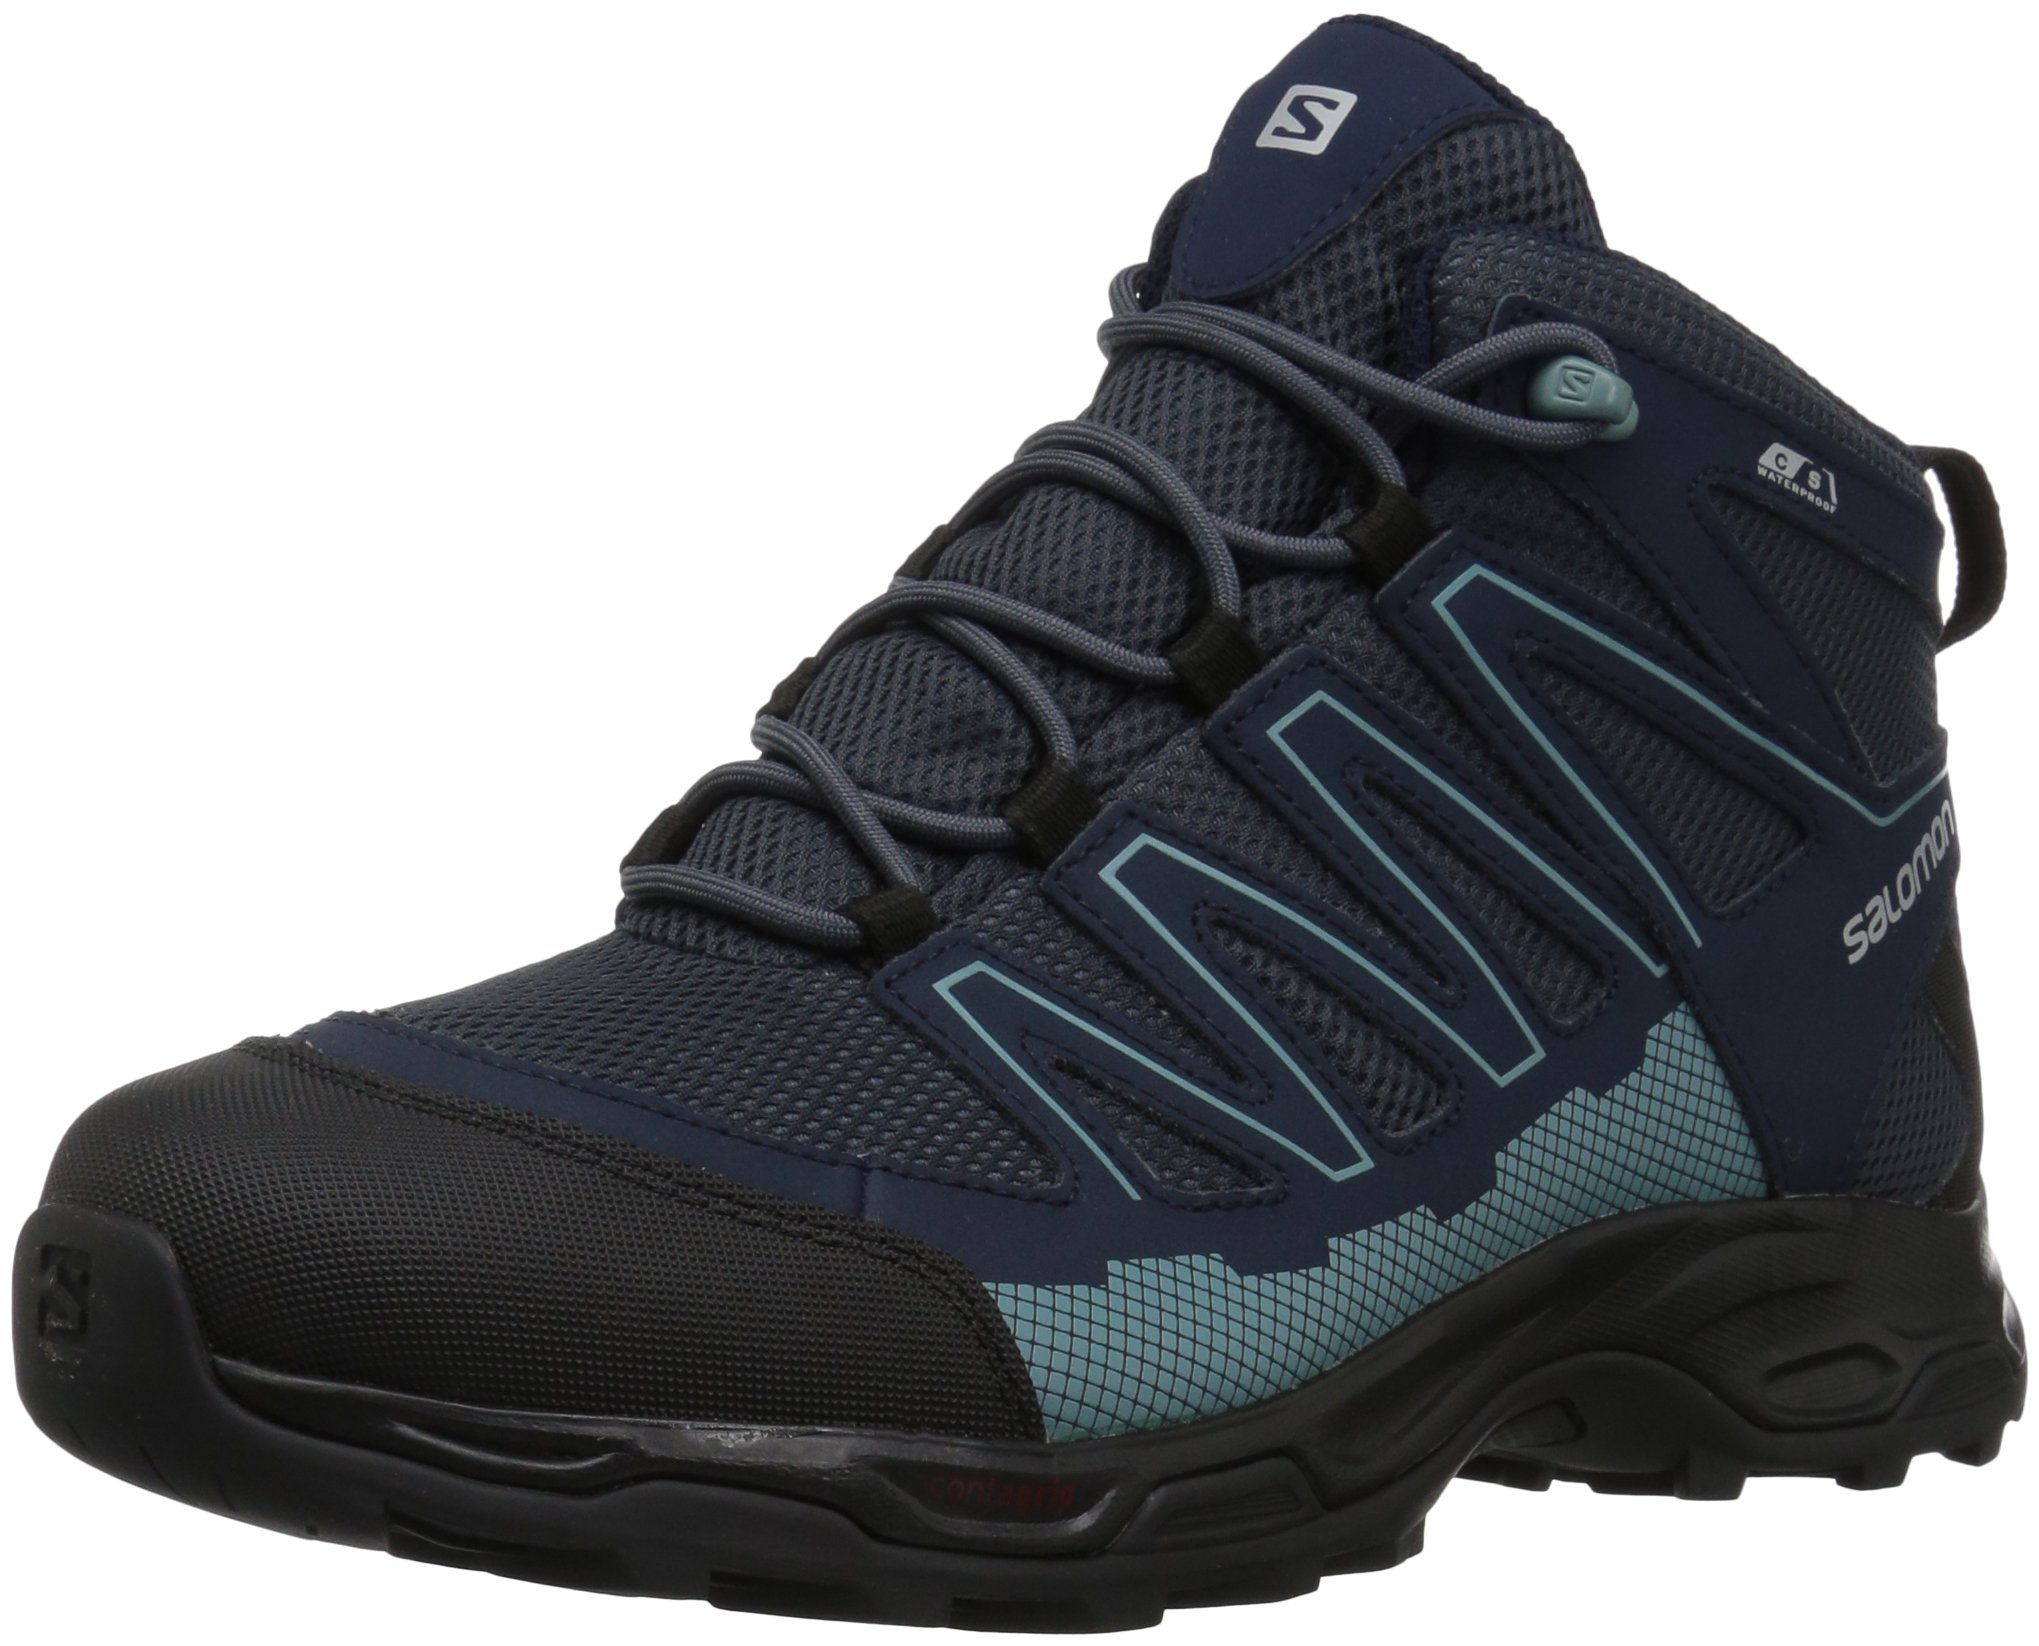 Salomon Women's Pathfinder CSWP Mid W Walking-Shoes, India Ink/Navy Blazer/Eggshell, 8 Medium US